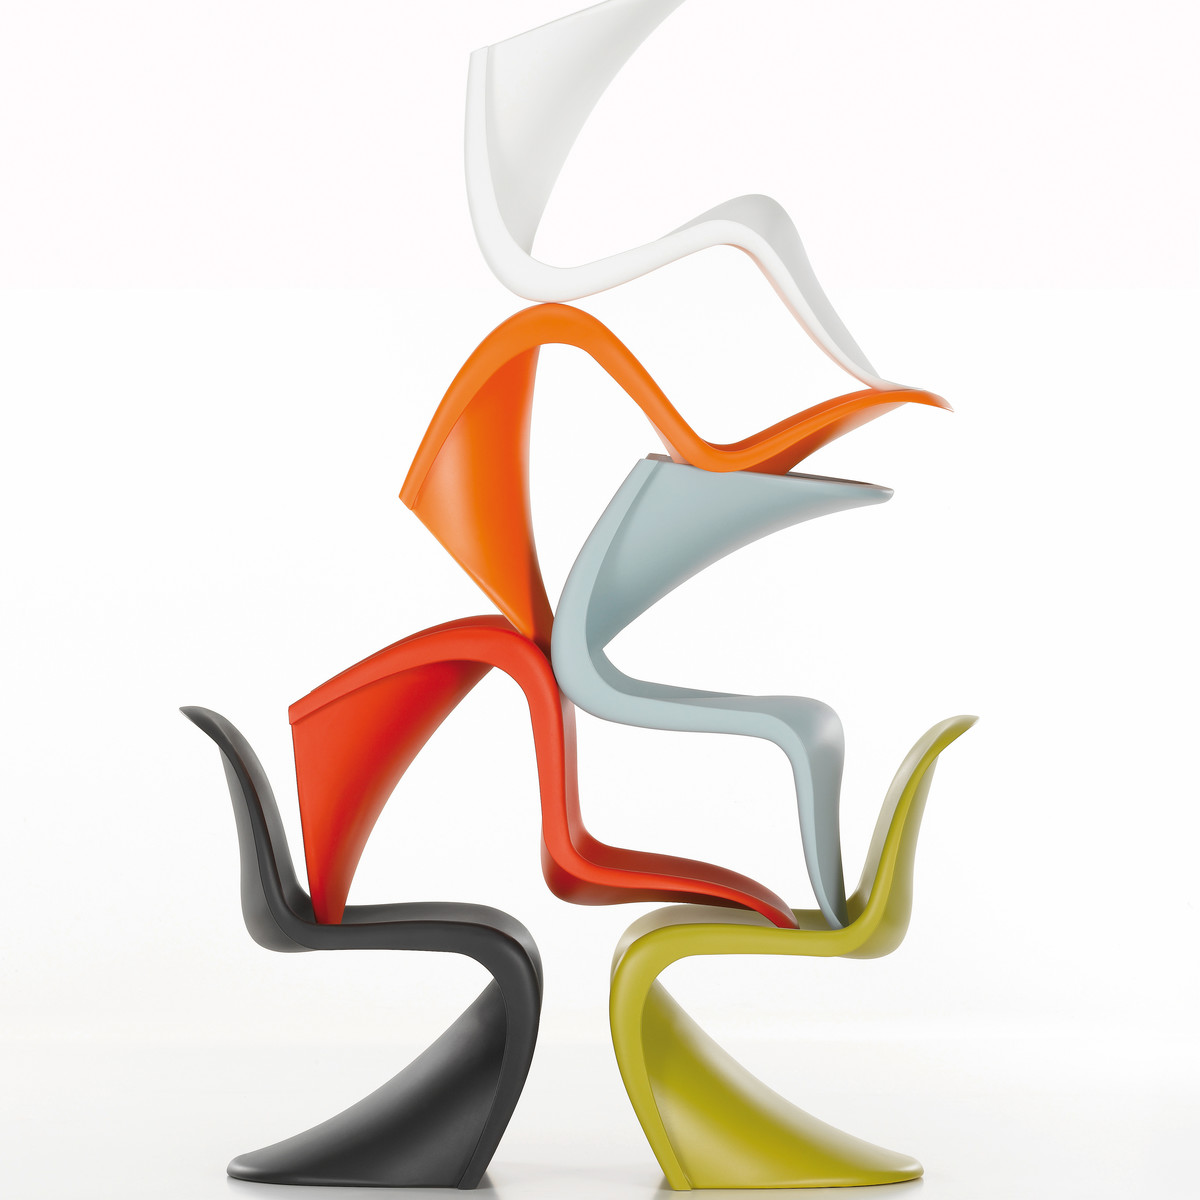 Panton Chairs Panton Chair By Vitra In Our Interior Design Shop